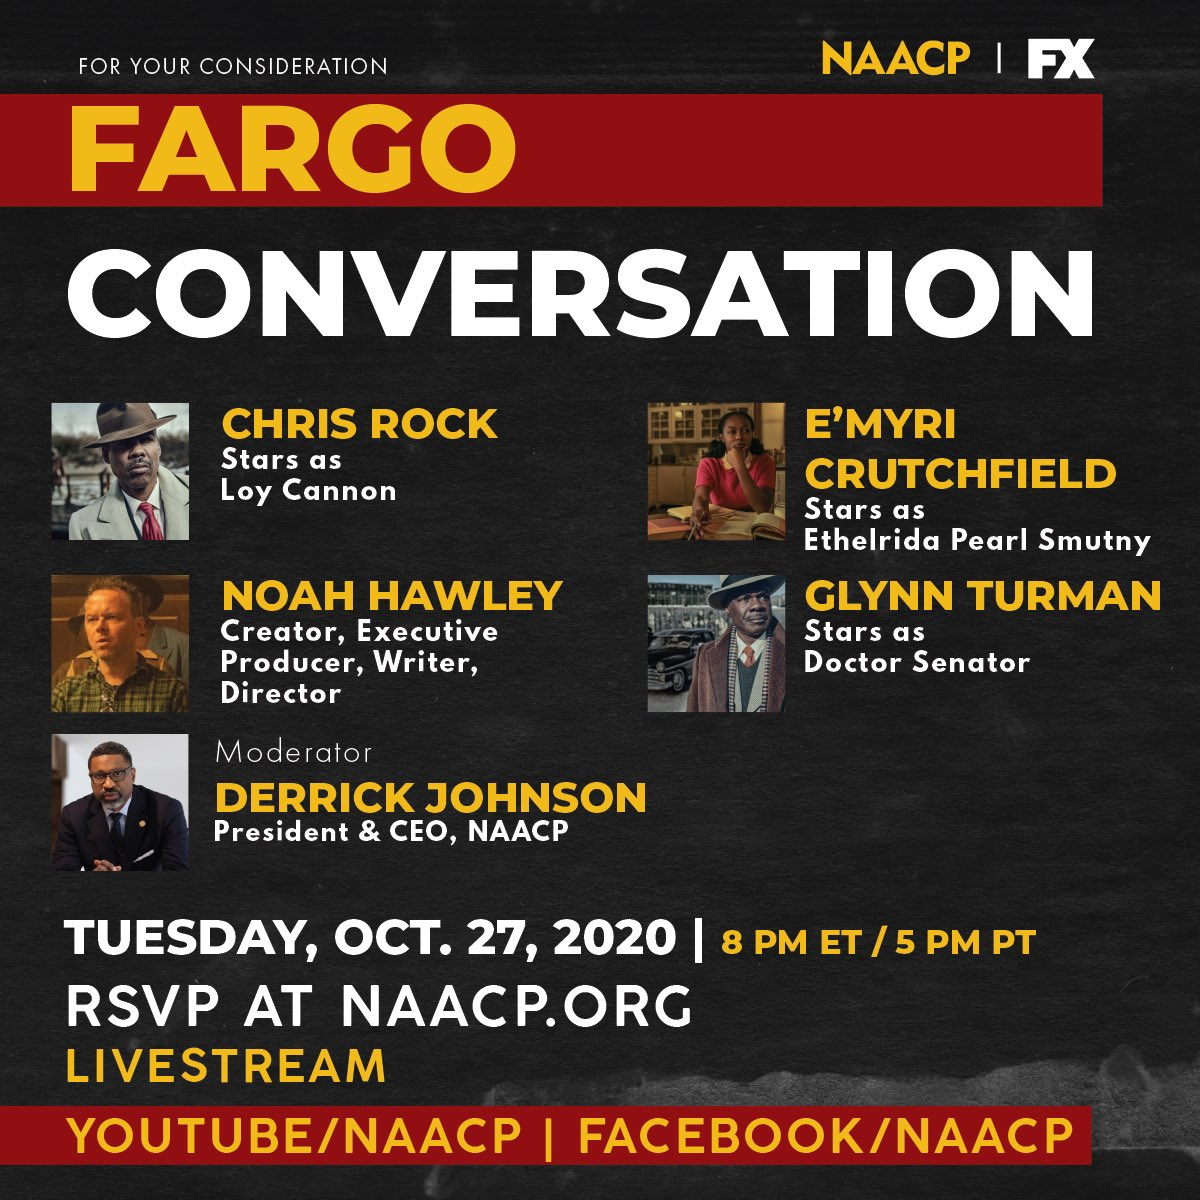 This Tuesday join us for a conversation w/ @chrisrock and the cast of @FargoFX discussing the new season and it's relation to the current state of Black America. Moderated by our very own President @DerrickNAACP. https://t.co/vOGXSP9GNp